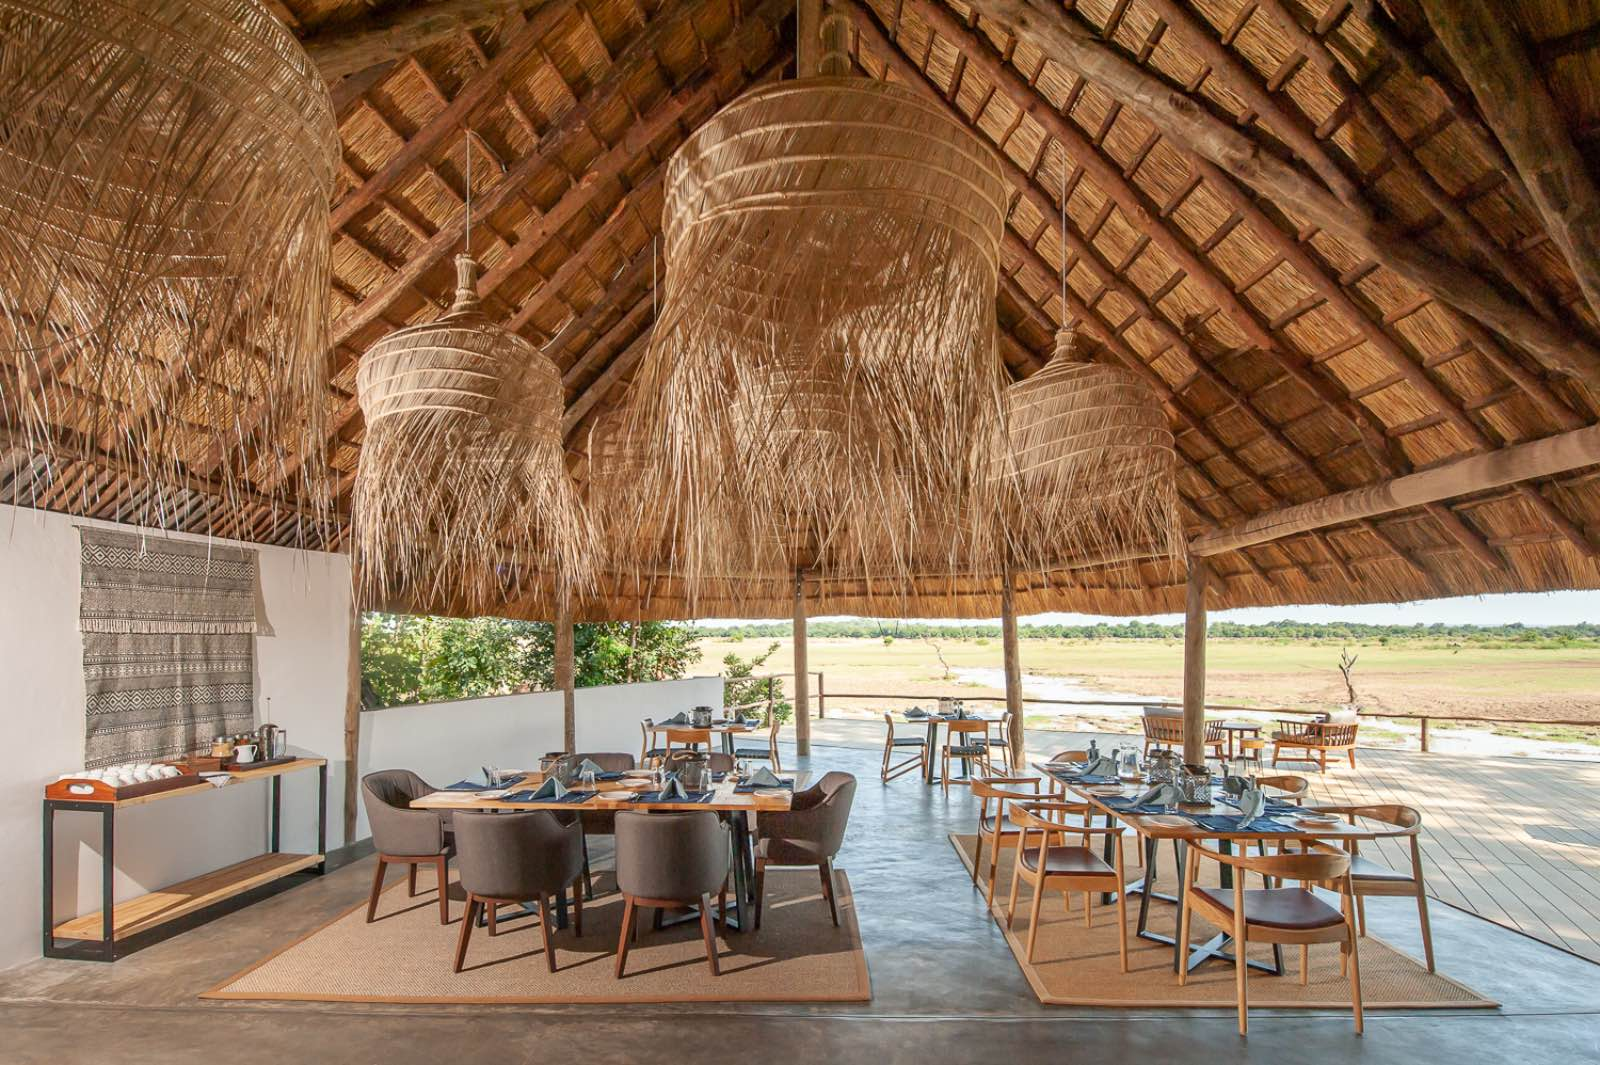 A dining area under thatch with soft furnishings and African accents